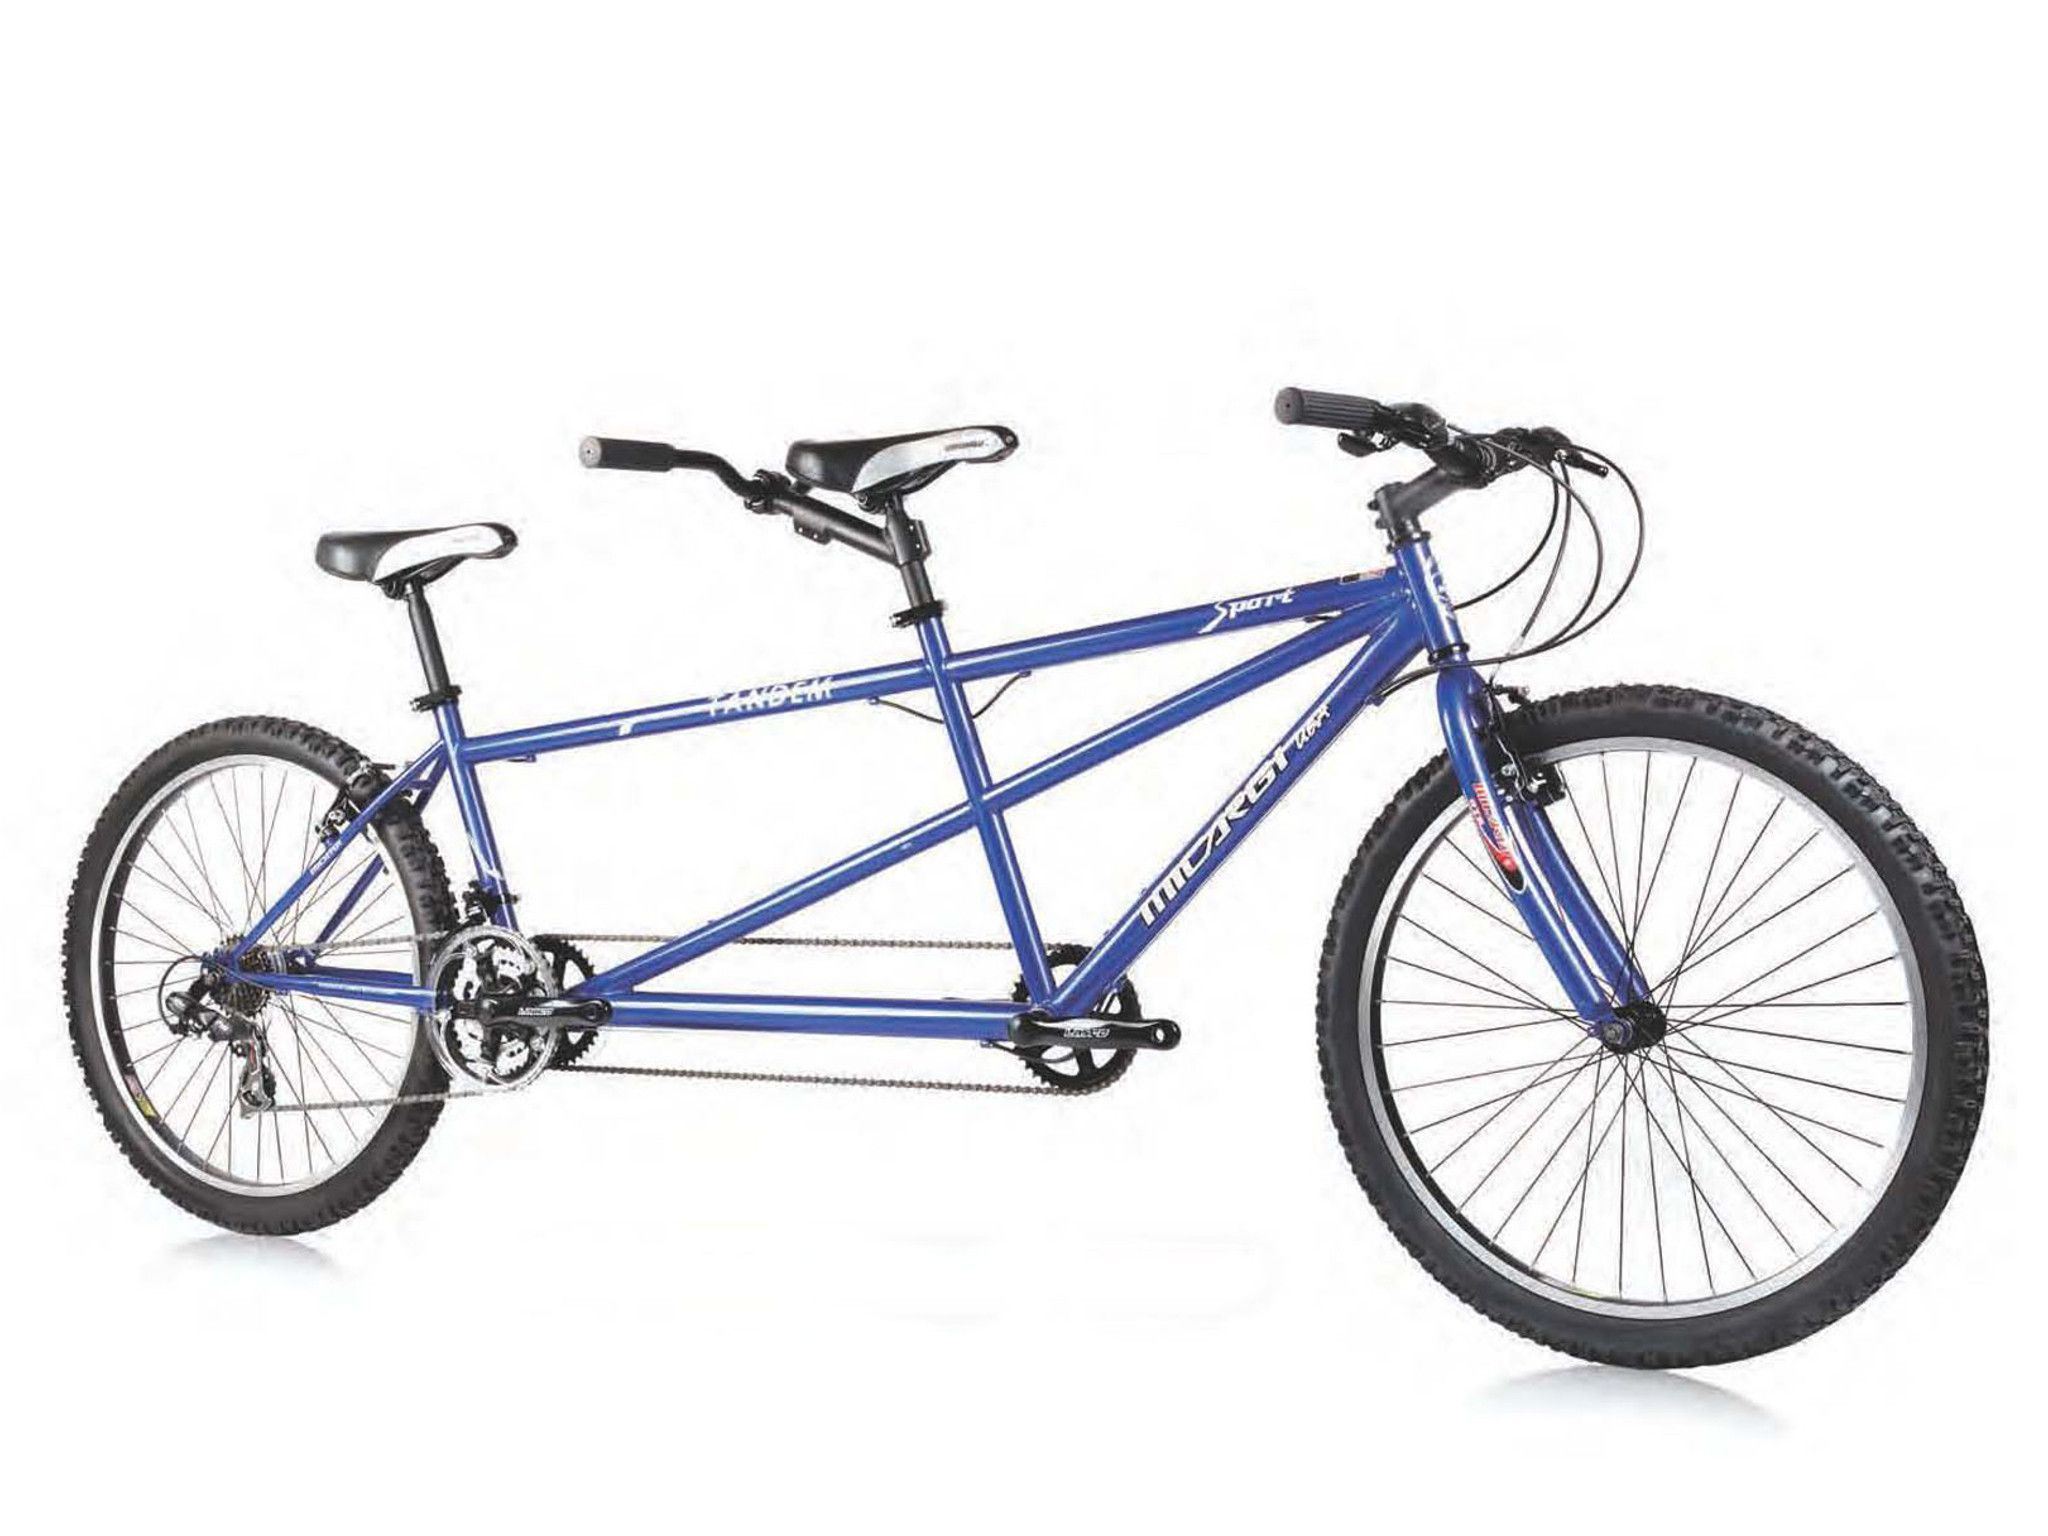 Micargi sport shimano 7 speed 26 tandem beach cruiser bike blue